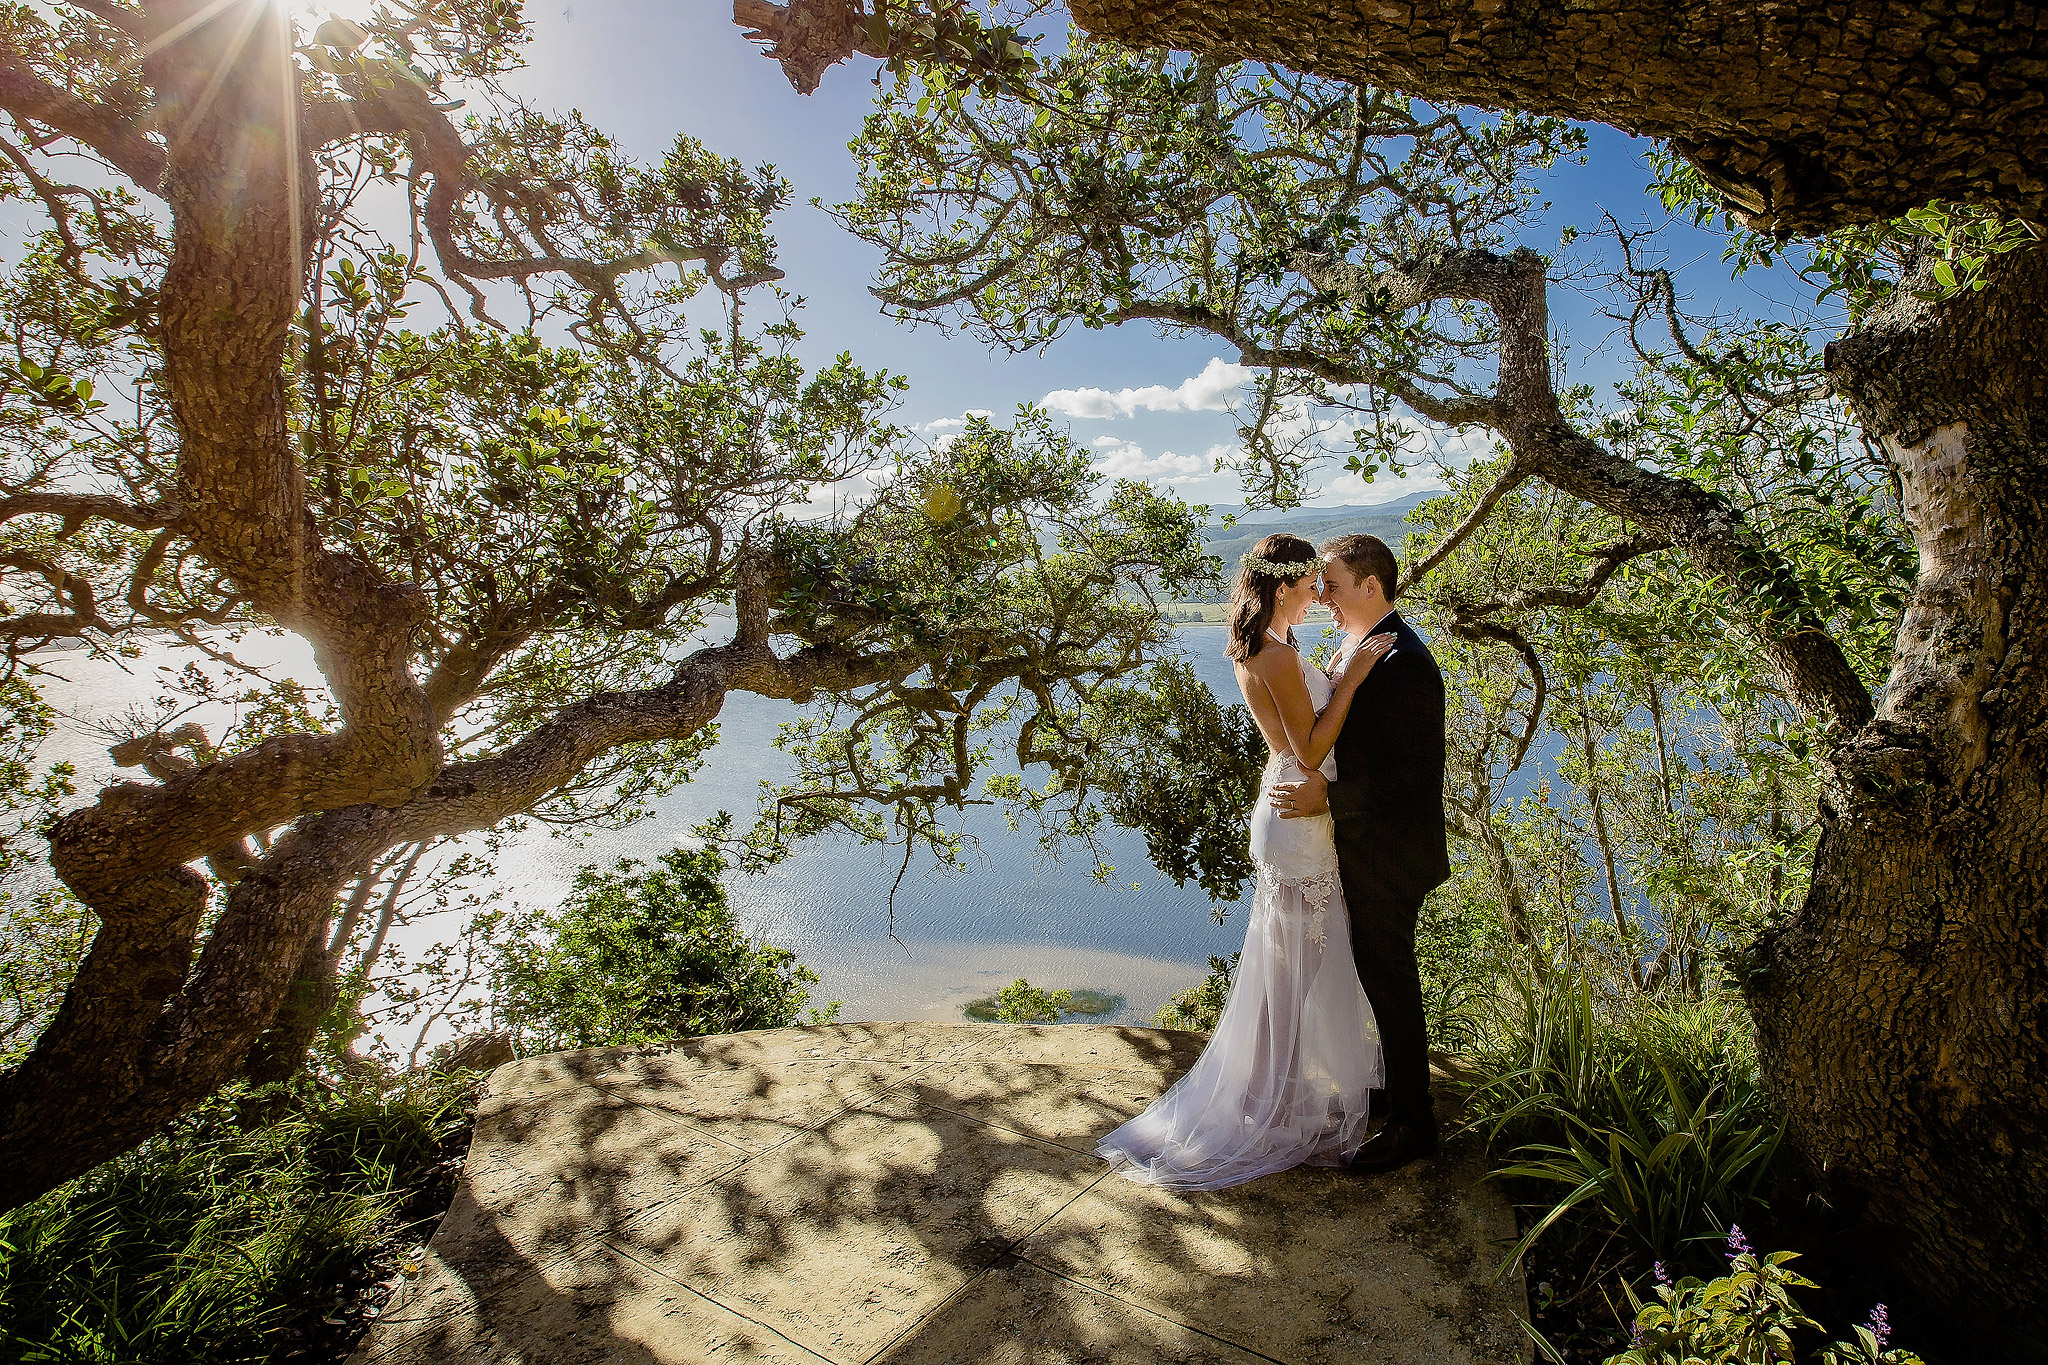 Couple amidst live oaks - photo by Ruan Redelinghuys Photography